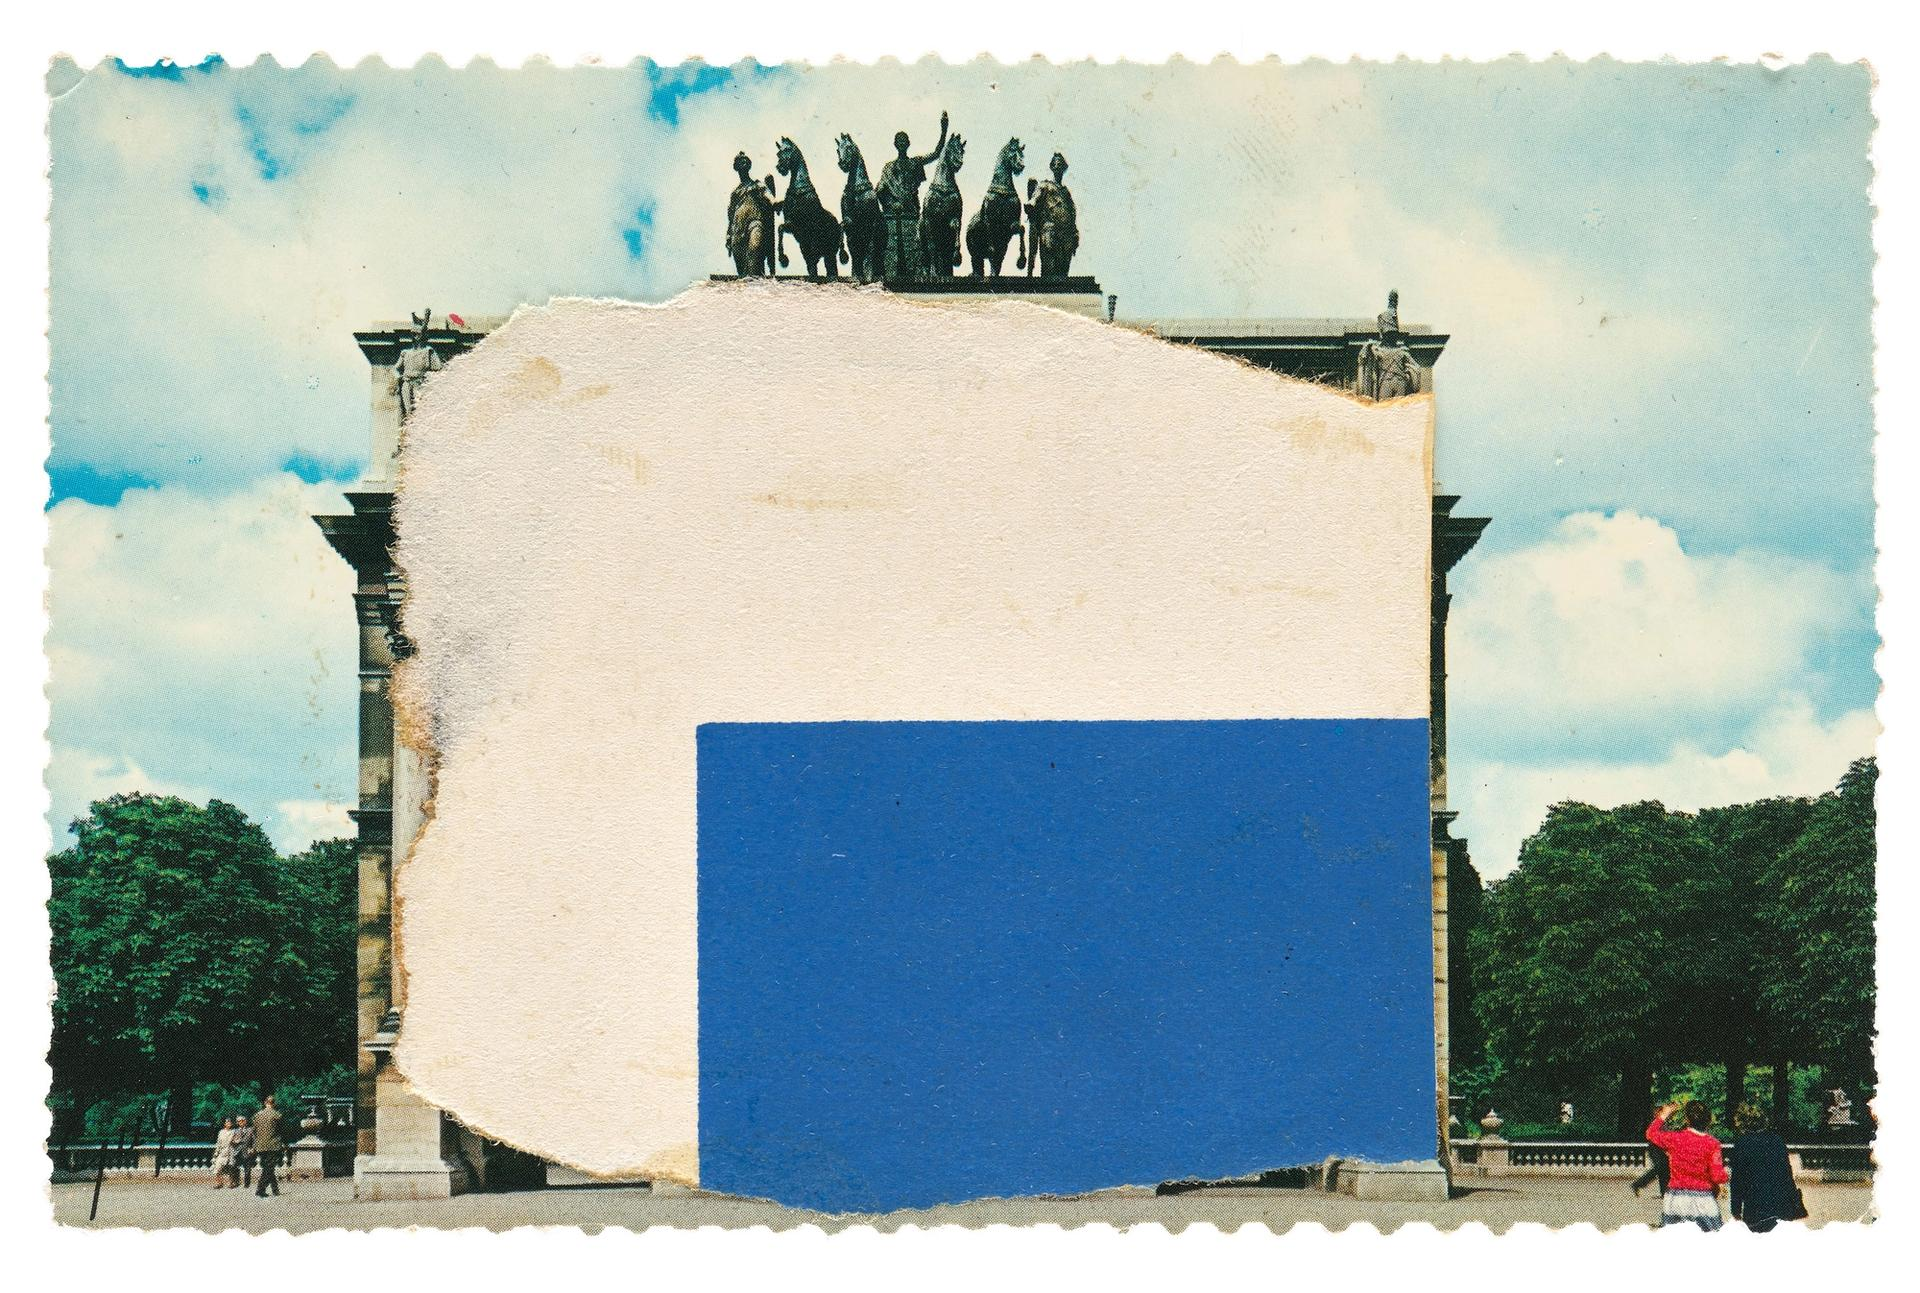 Ellsworth Kelly, Study for Blue and White Sculpture for Les Tuileries (1964), 3 1/2 x 5 1/2 inches, collection of Ellsworth Kelly Studio and Jack Shear © Ellsworth Kelly Foundation